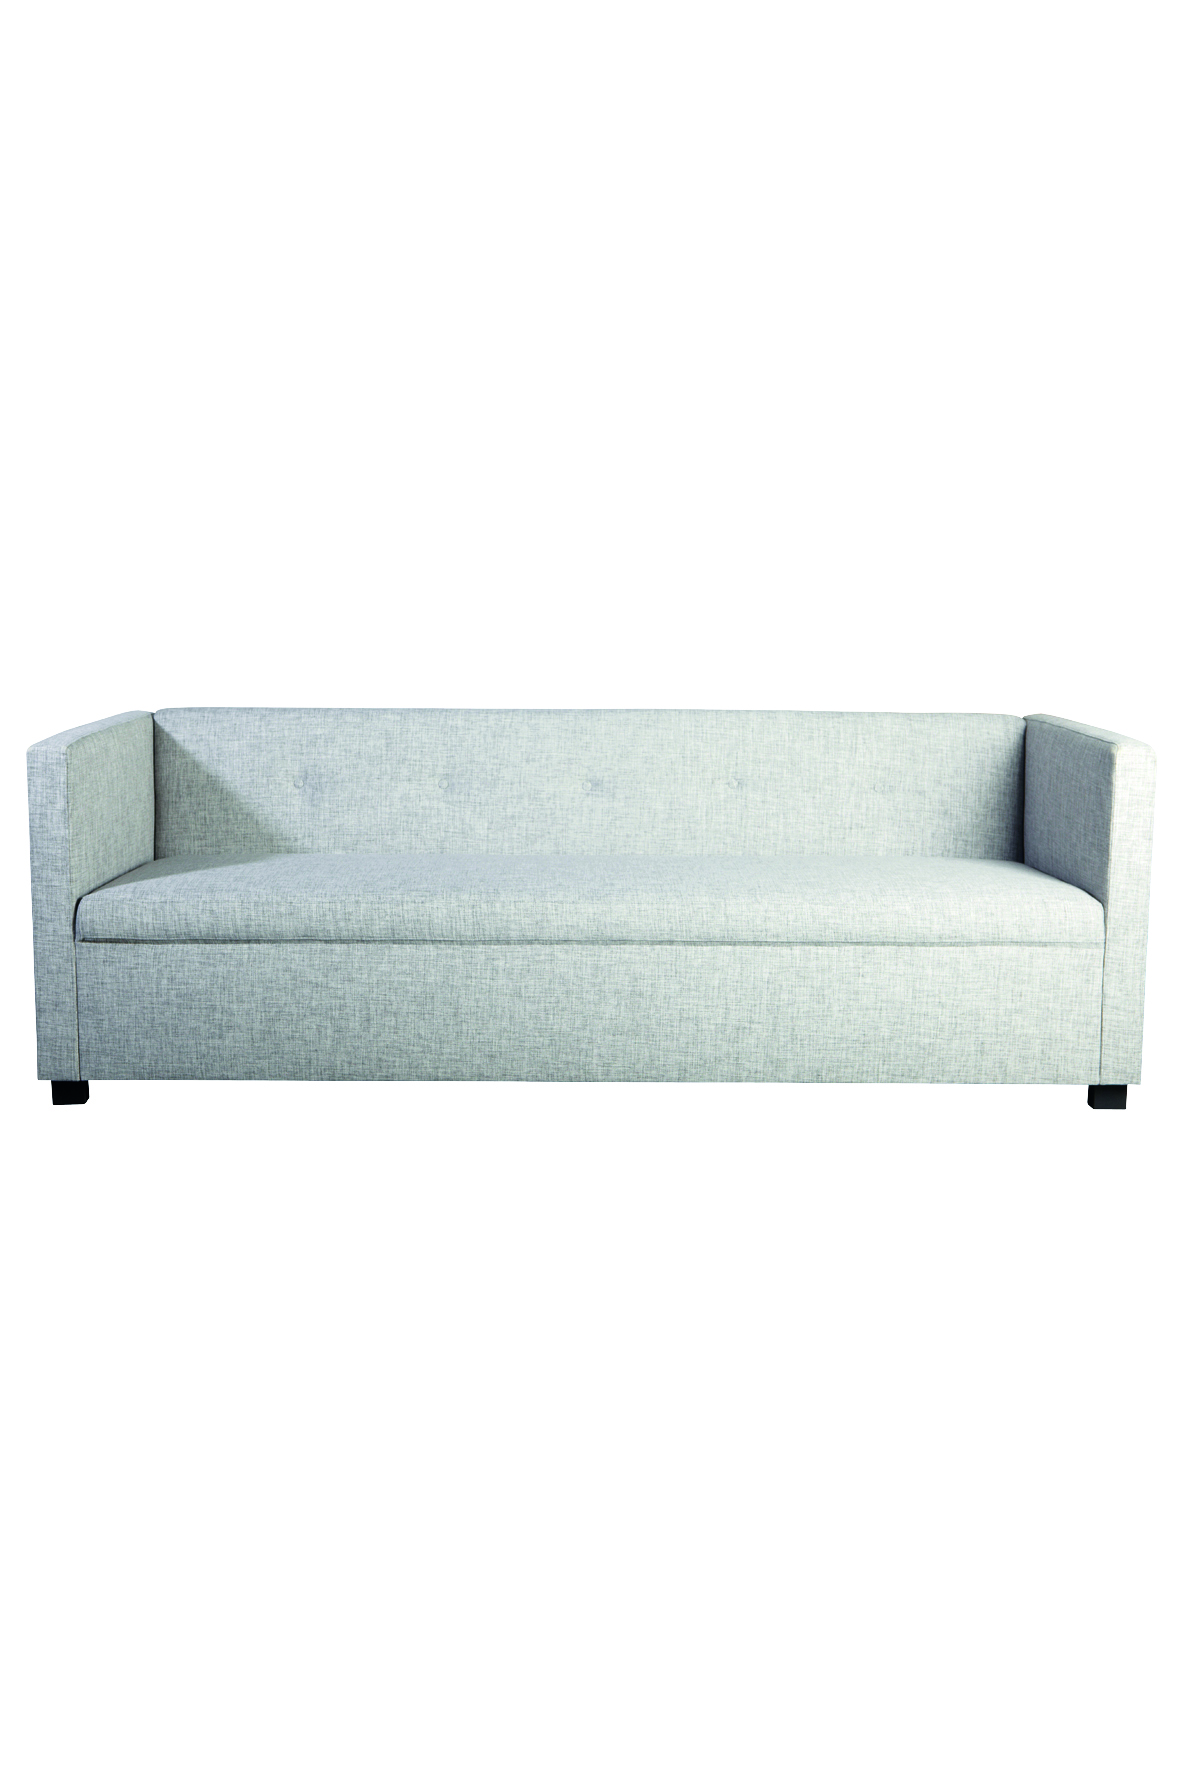 Image of   House doctor sofa botton lysegrå 80x220 cm h75 cm polyester